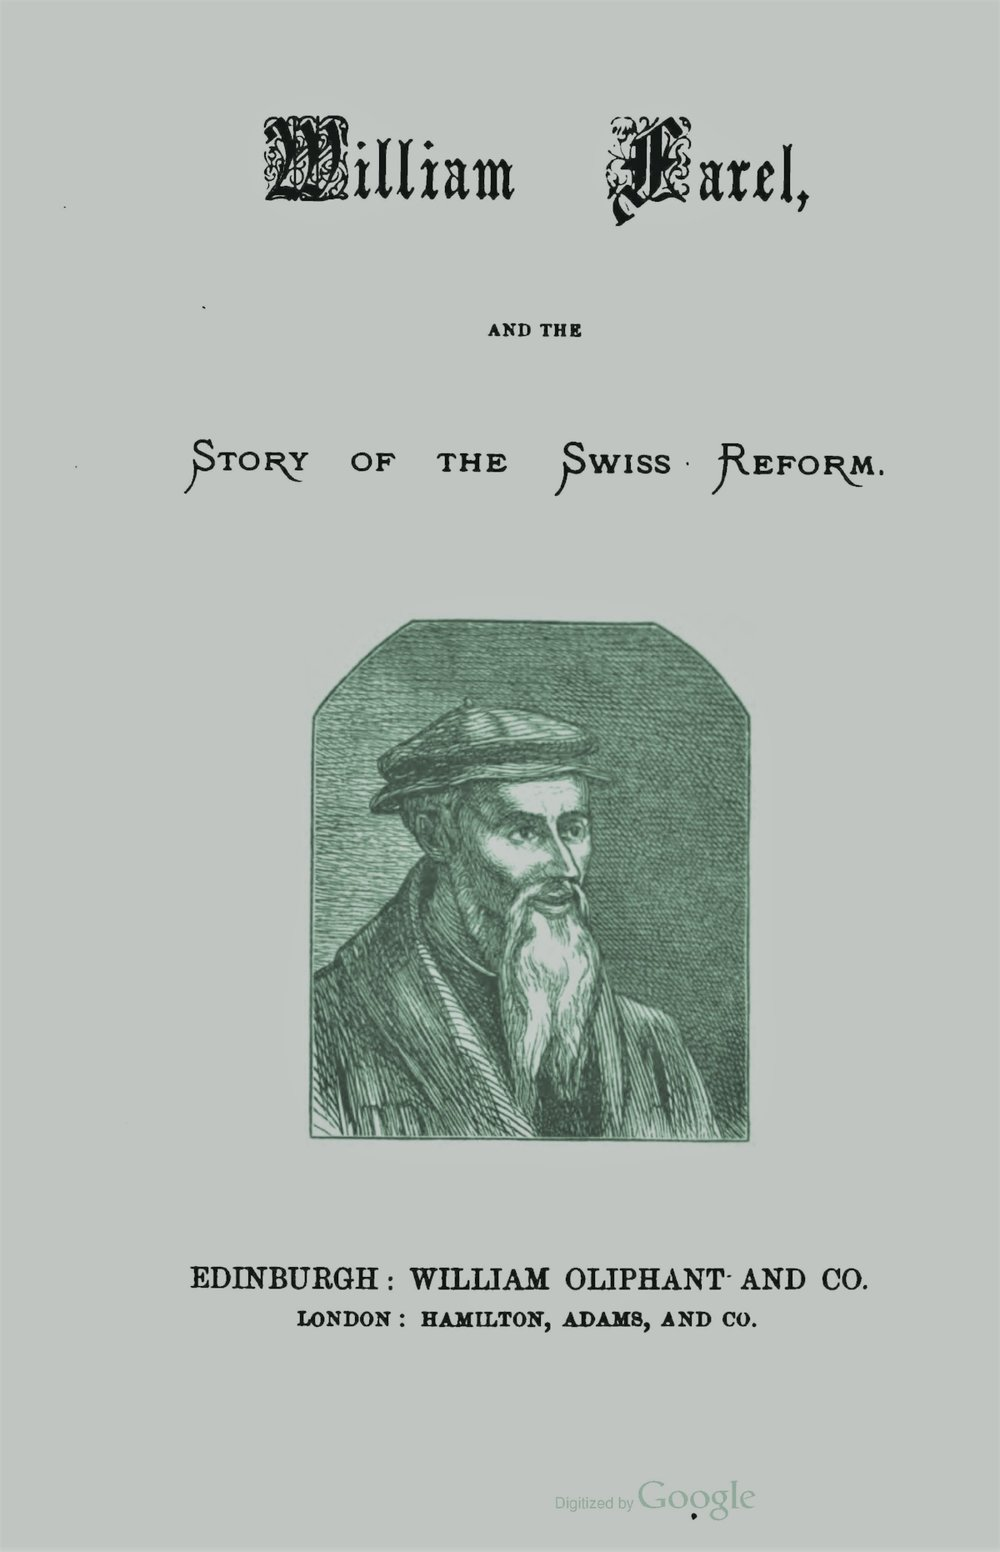 Blackburn, William Maxwell, William Farel and the Story of the Swiss Reform Title Page.jpg